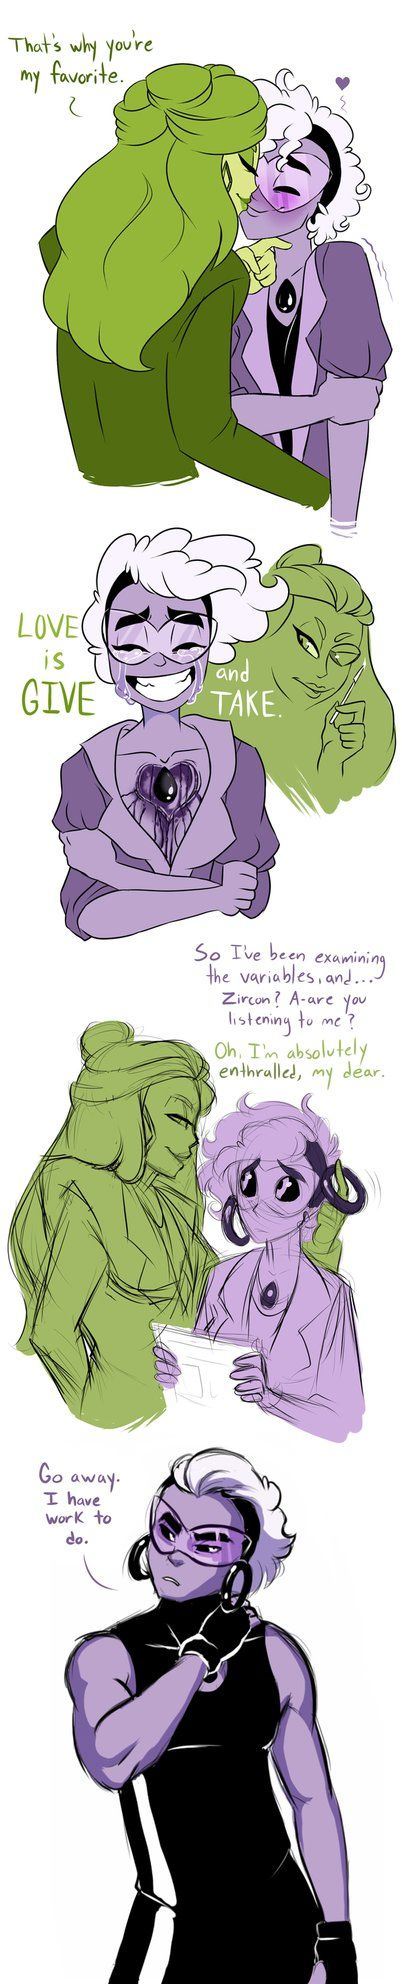 Mo doodles, mo problems~ Some sketchy stuff before bed, exploring more with Zircon and Onyx 1.) Zircon and young Onyx. Look at that little idiot. So happy and in love, blindly in love. Zircon used ...